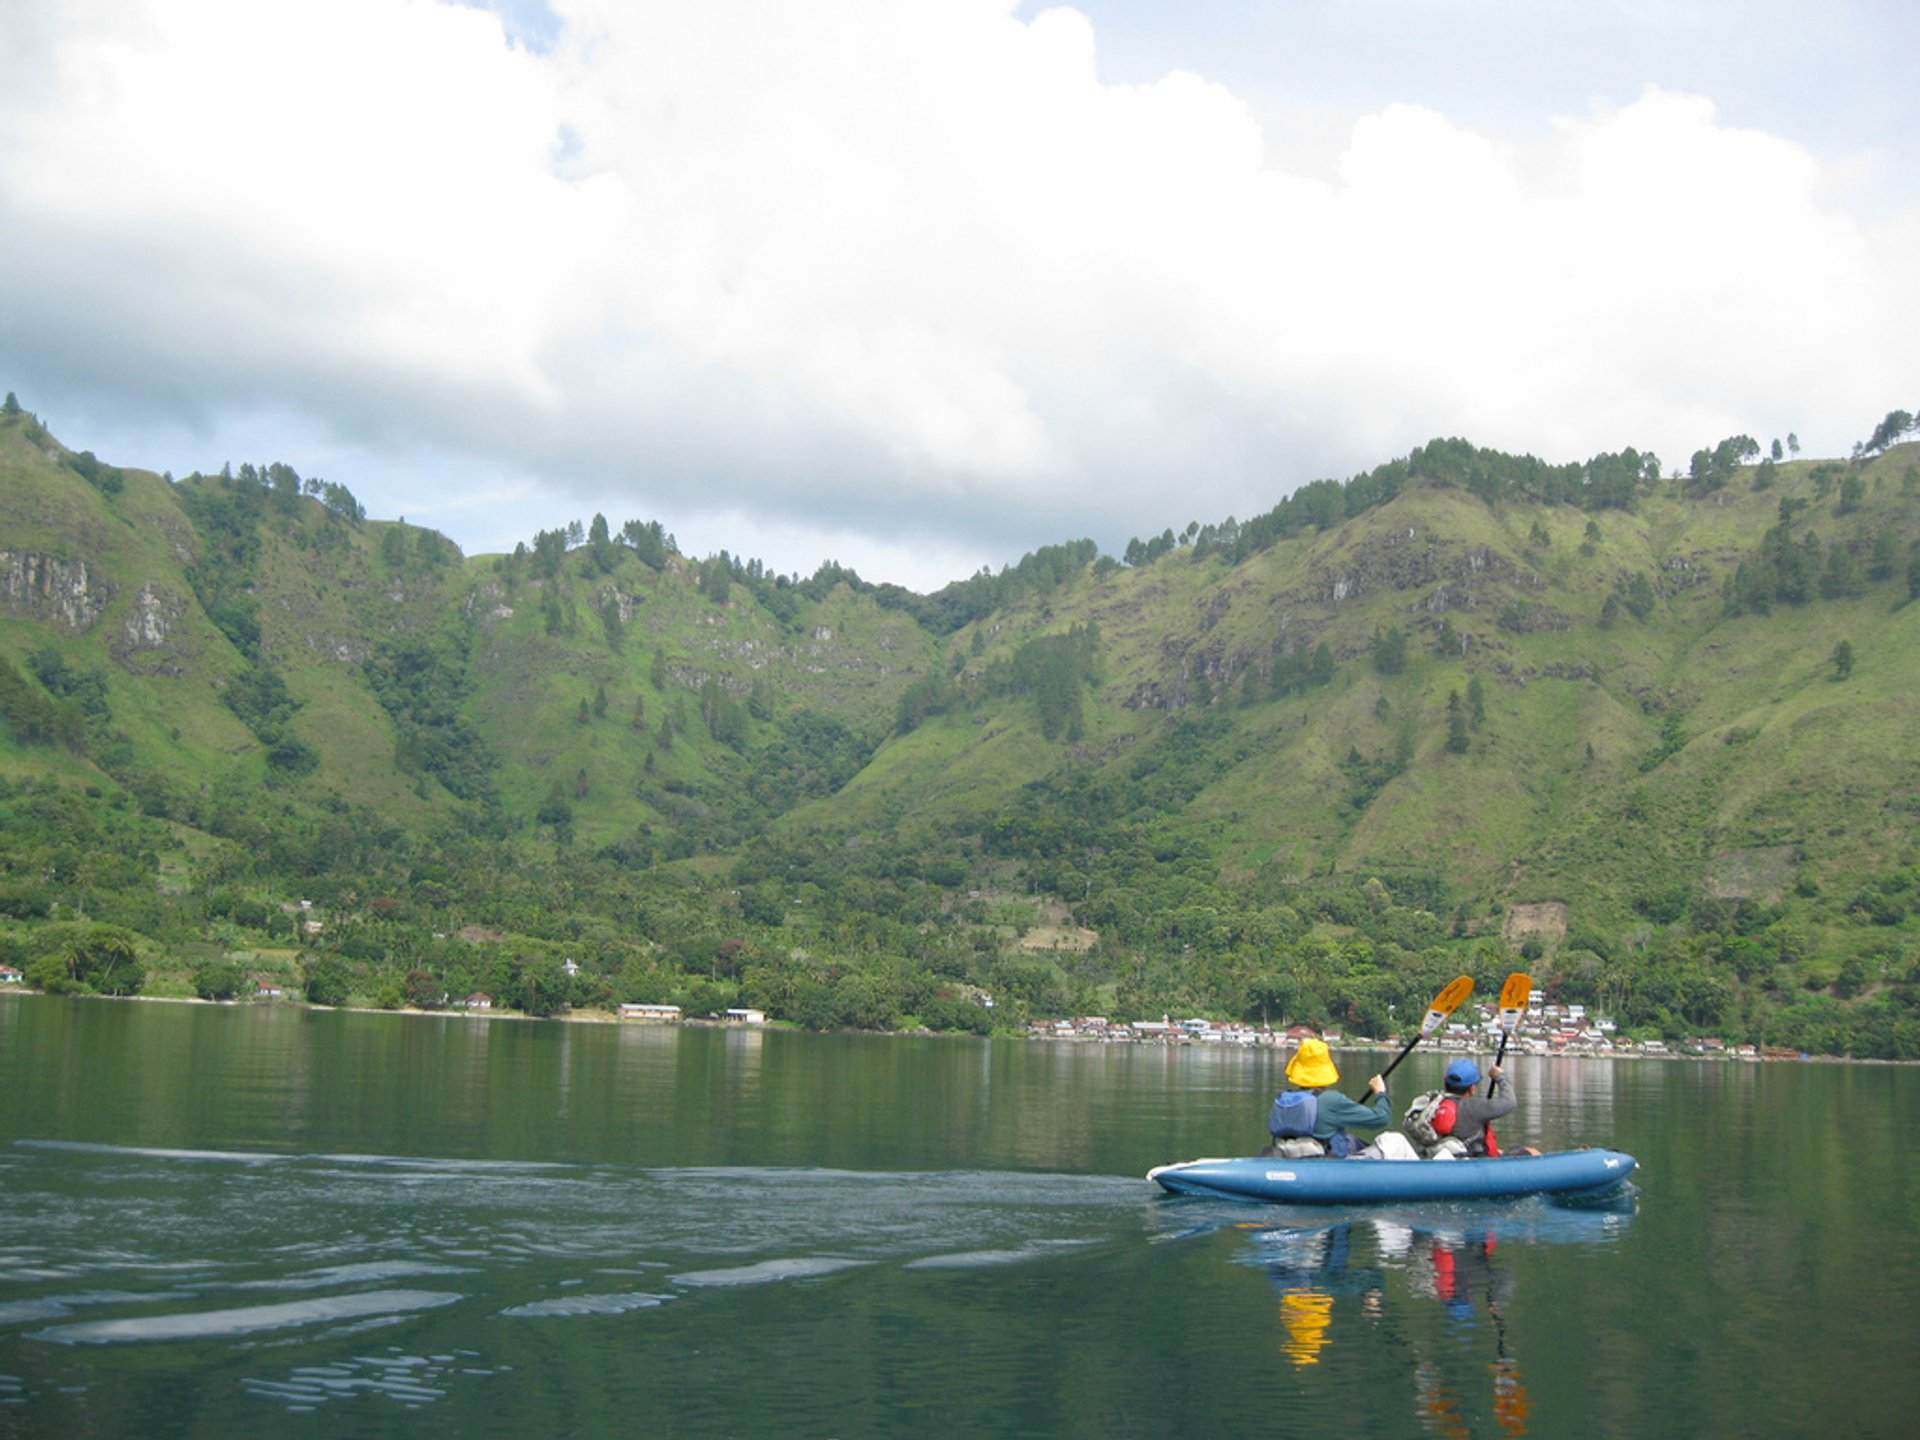 Lake Toba, Indonesia 2019